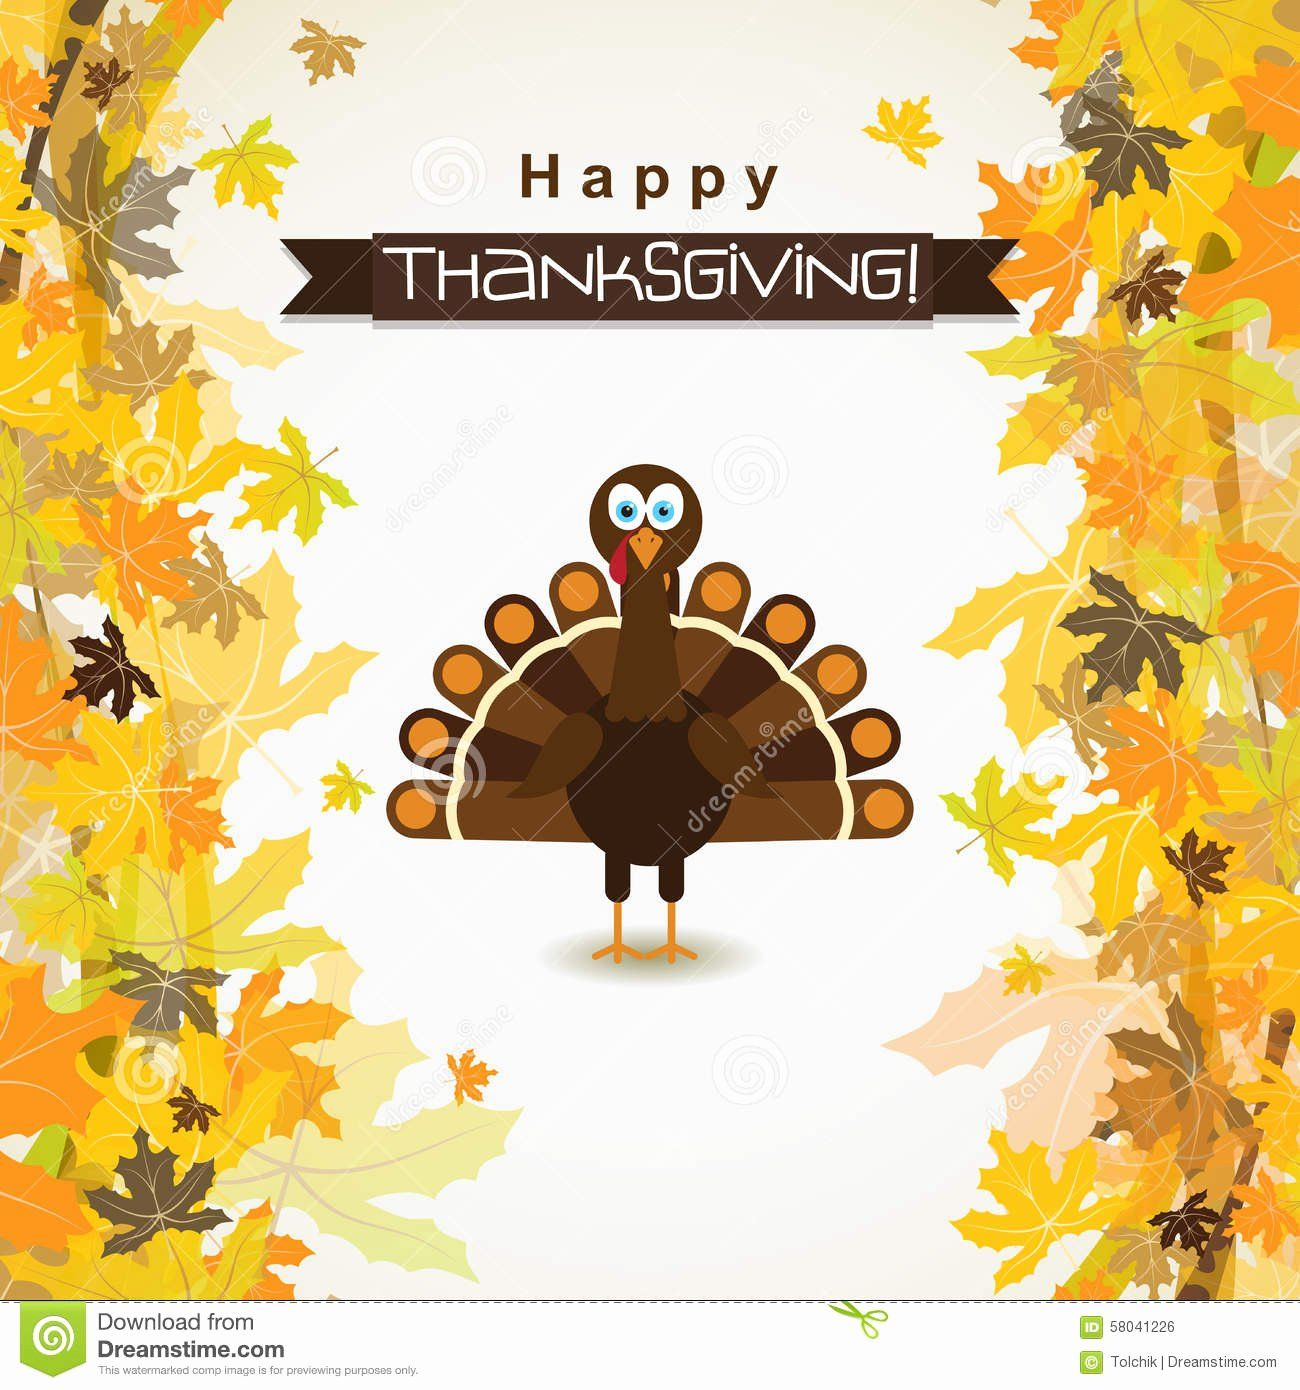 Free Thanksgiving Templates For Word Best Of Happy Thanksgiving Templates Happy Easter Thanksgiving Templates Free Thanksgiving Wedding Place Card Templates